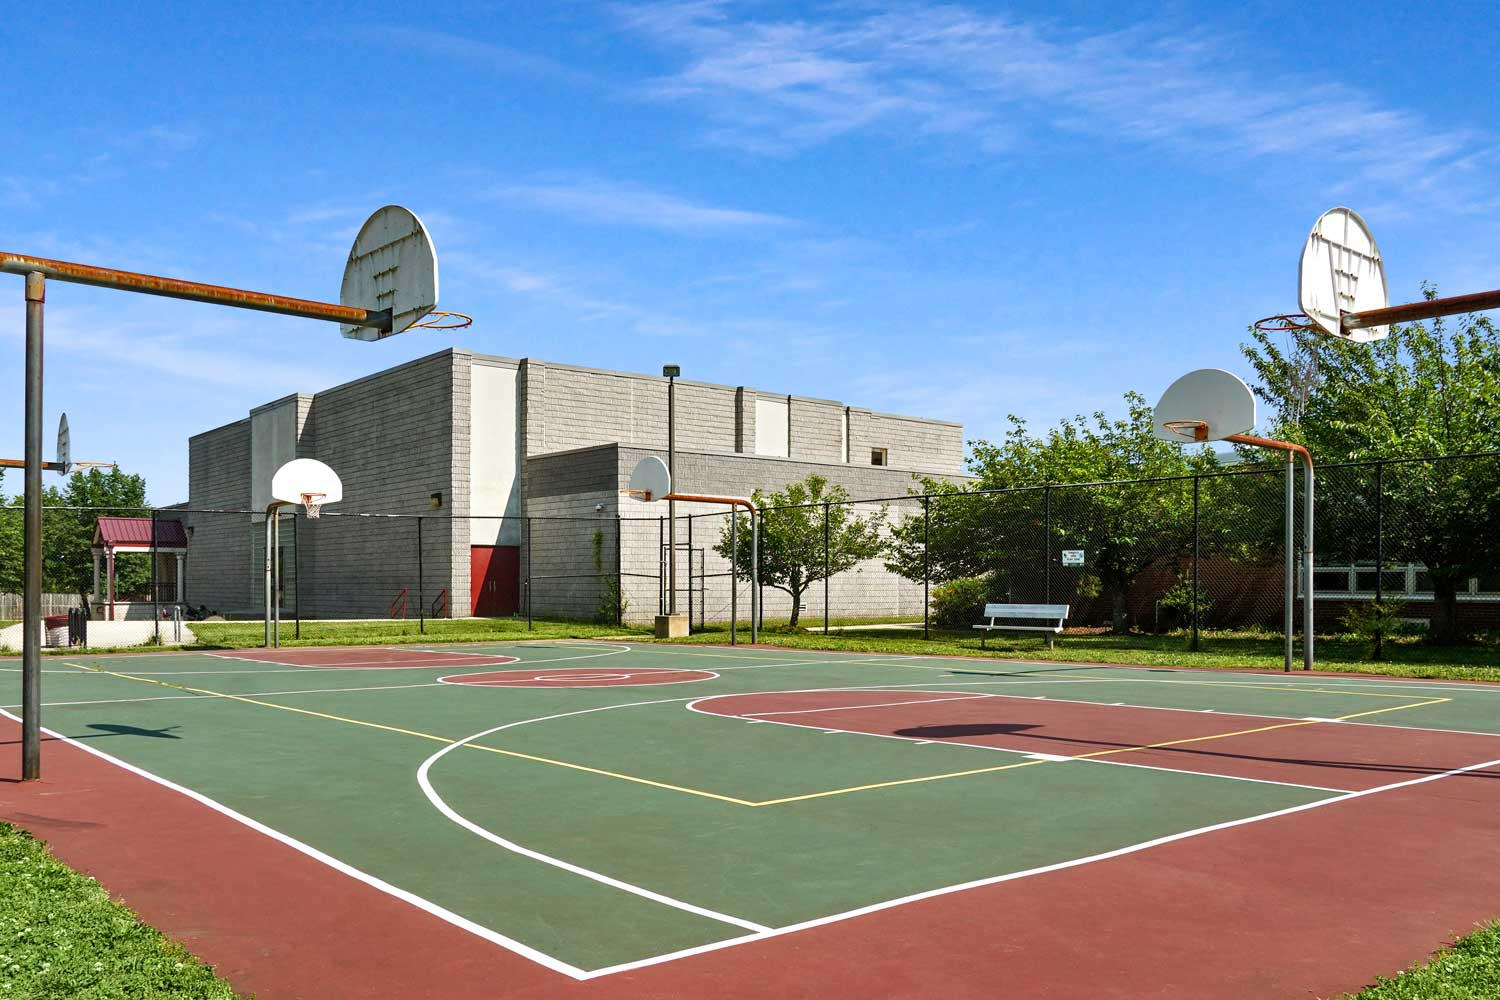 Basketball court within walking distance from Barcroft View Apartments